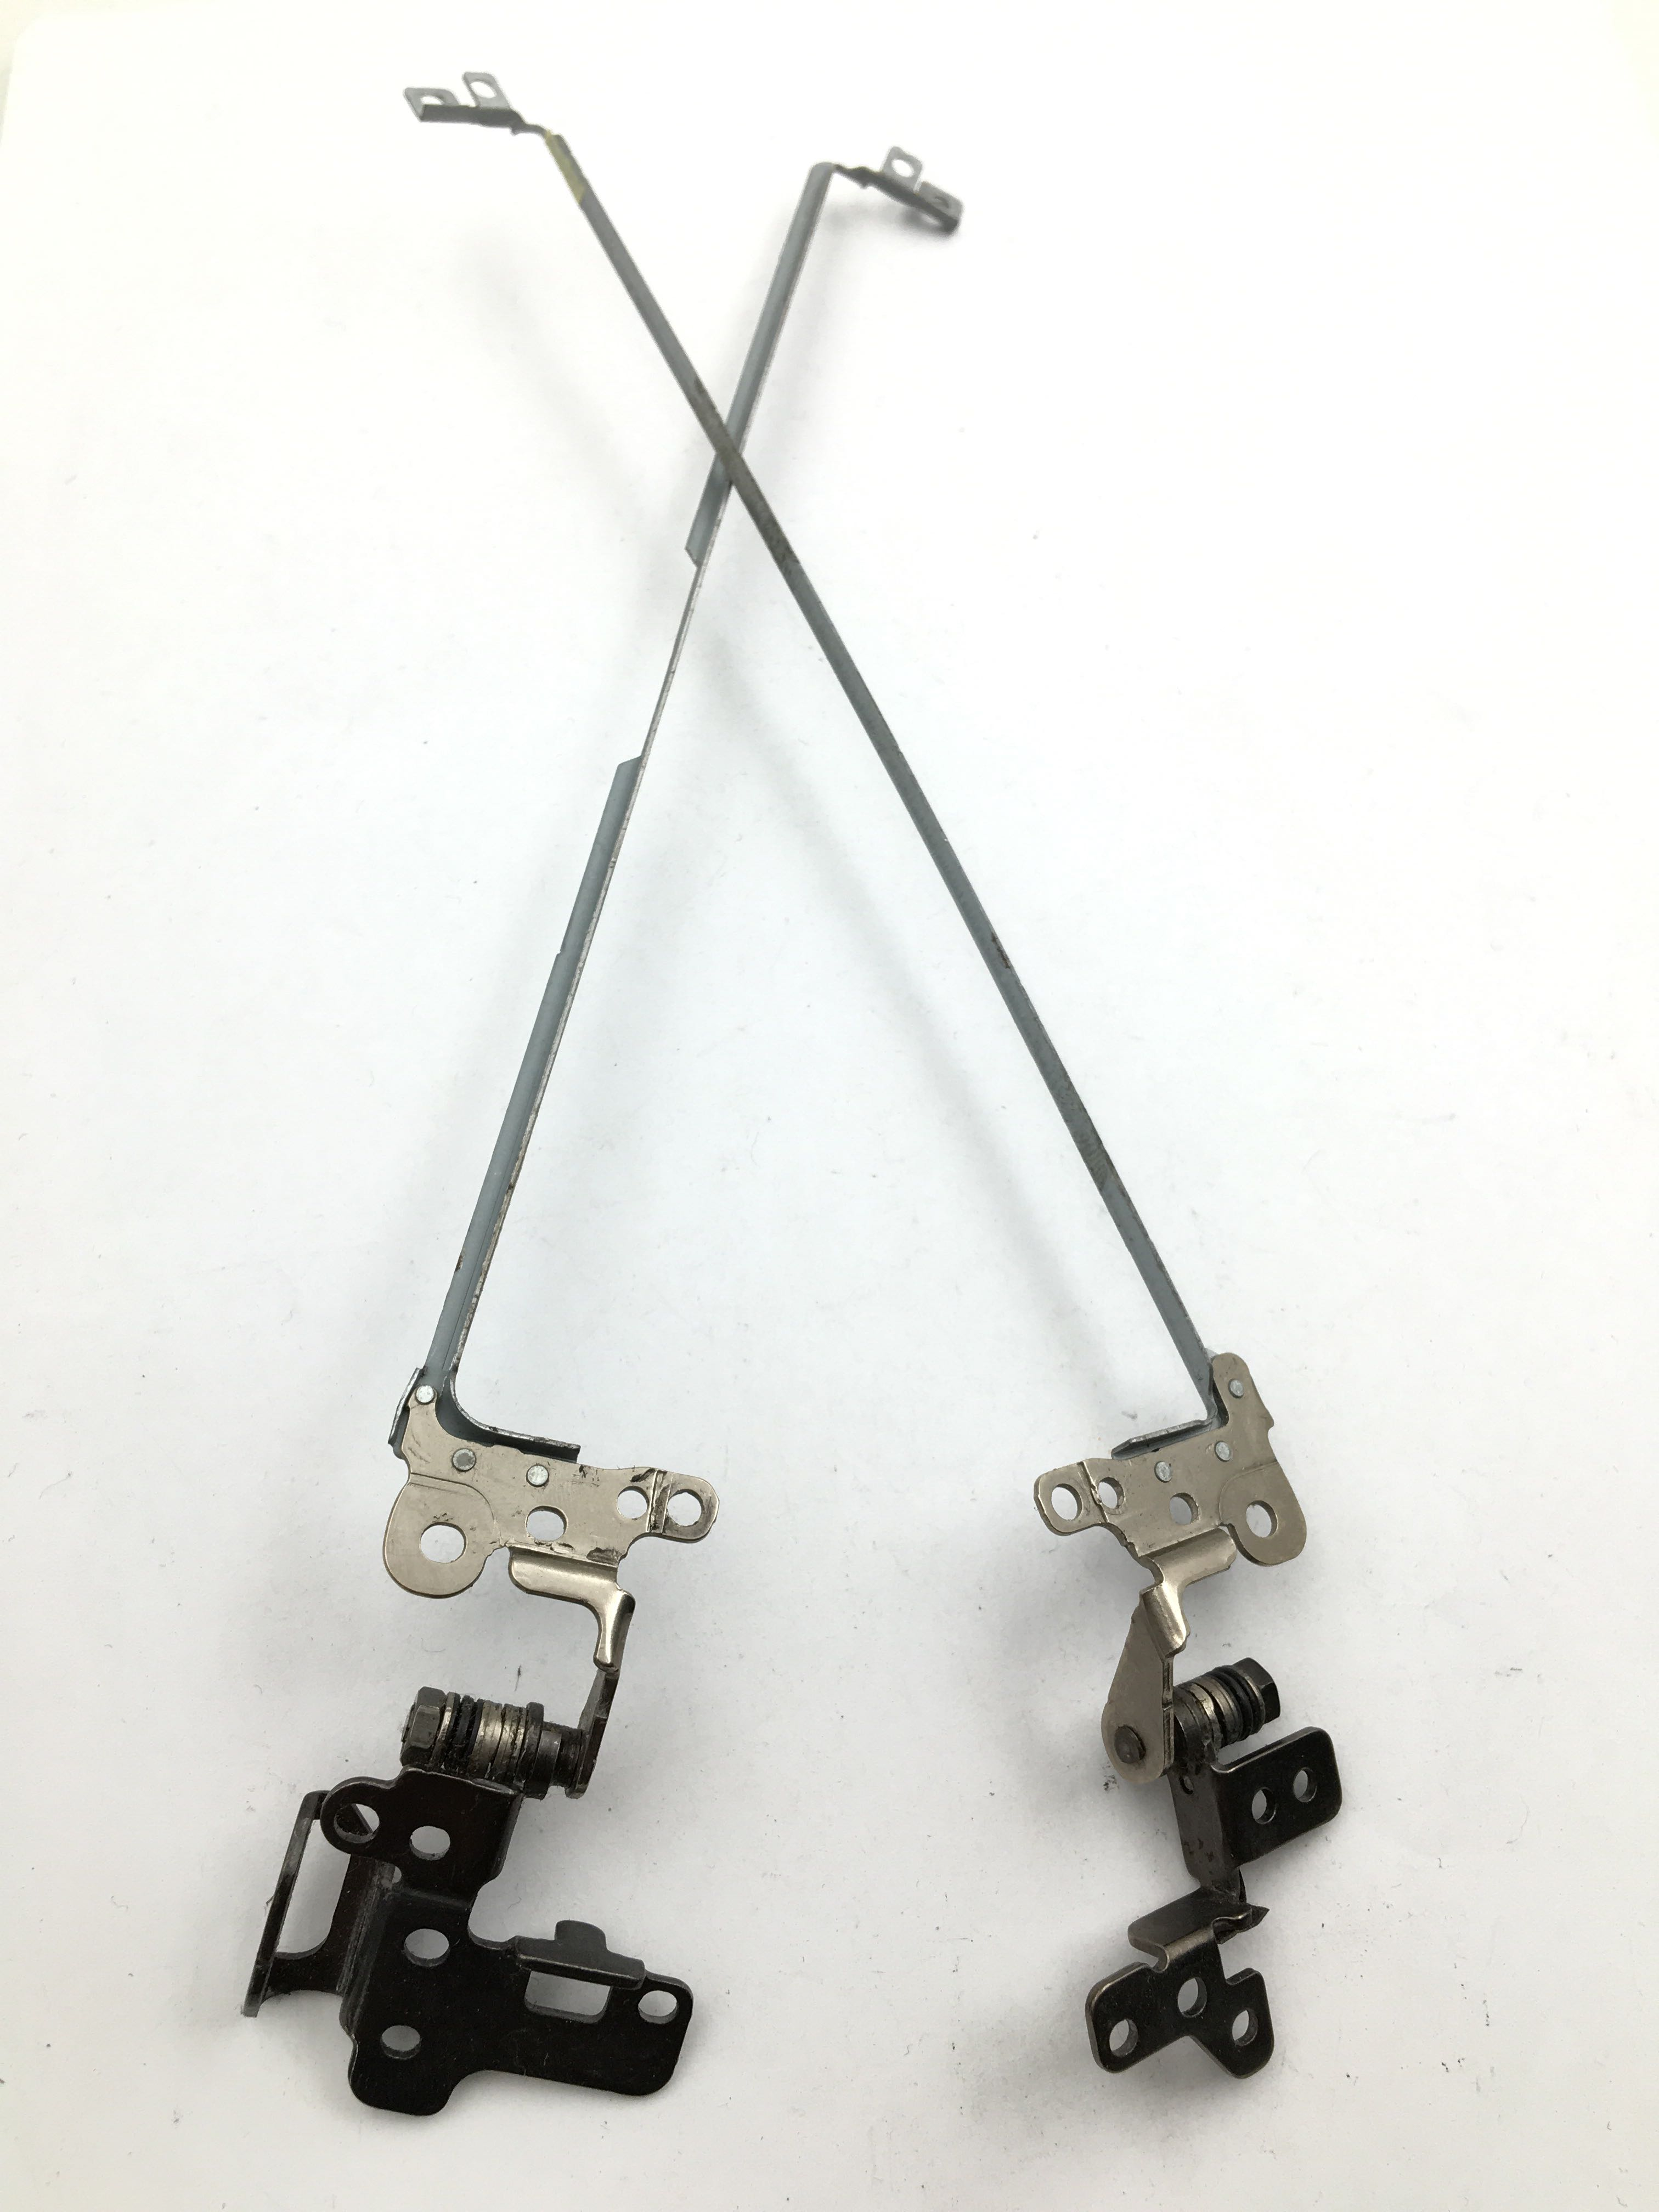 New Acer Aspire One 722 AO722 AM012000300 AM012000400 Laptop LCD Hinges Brakets Set